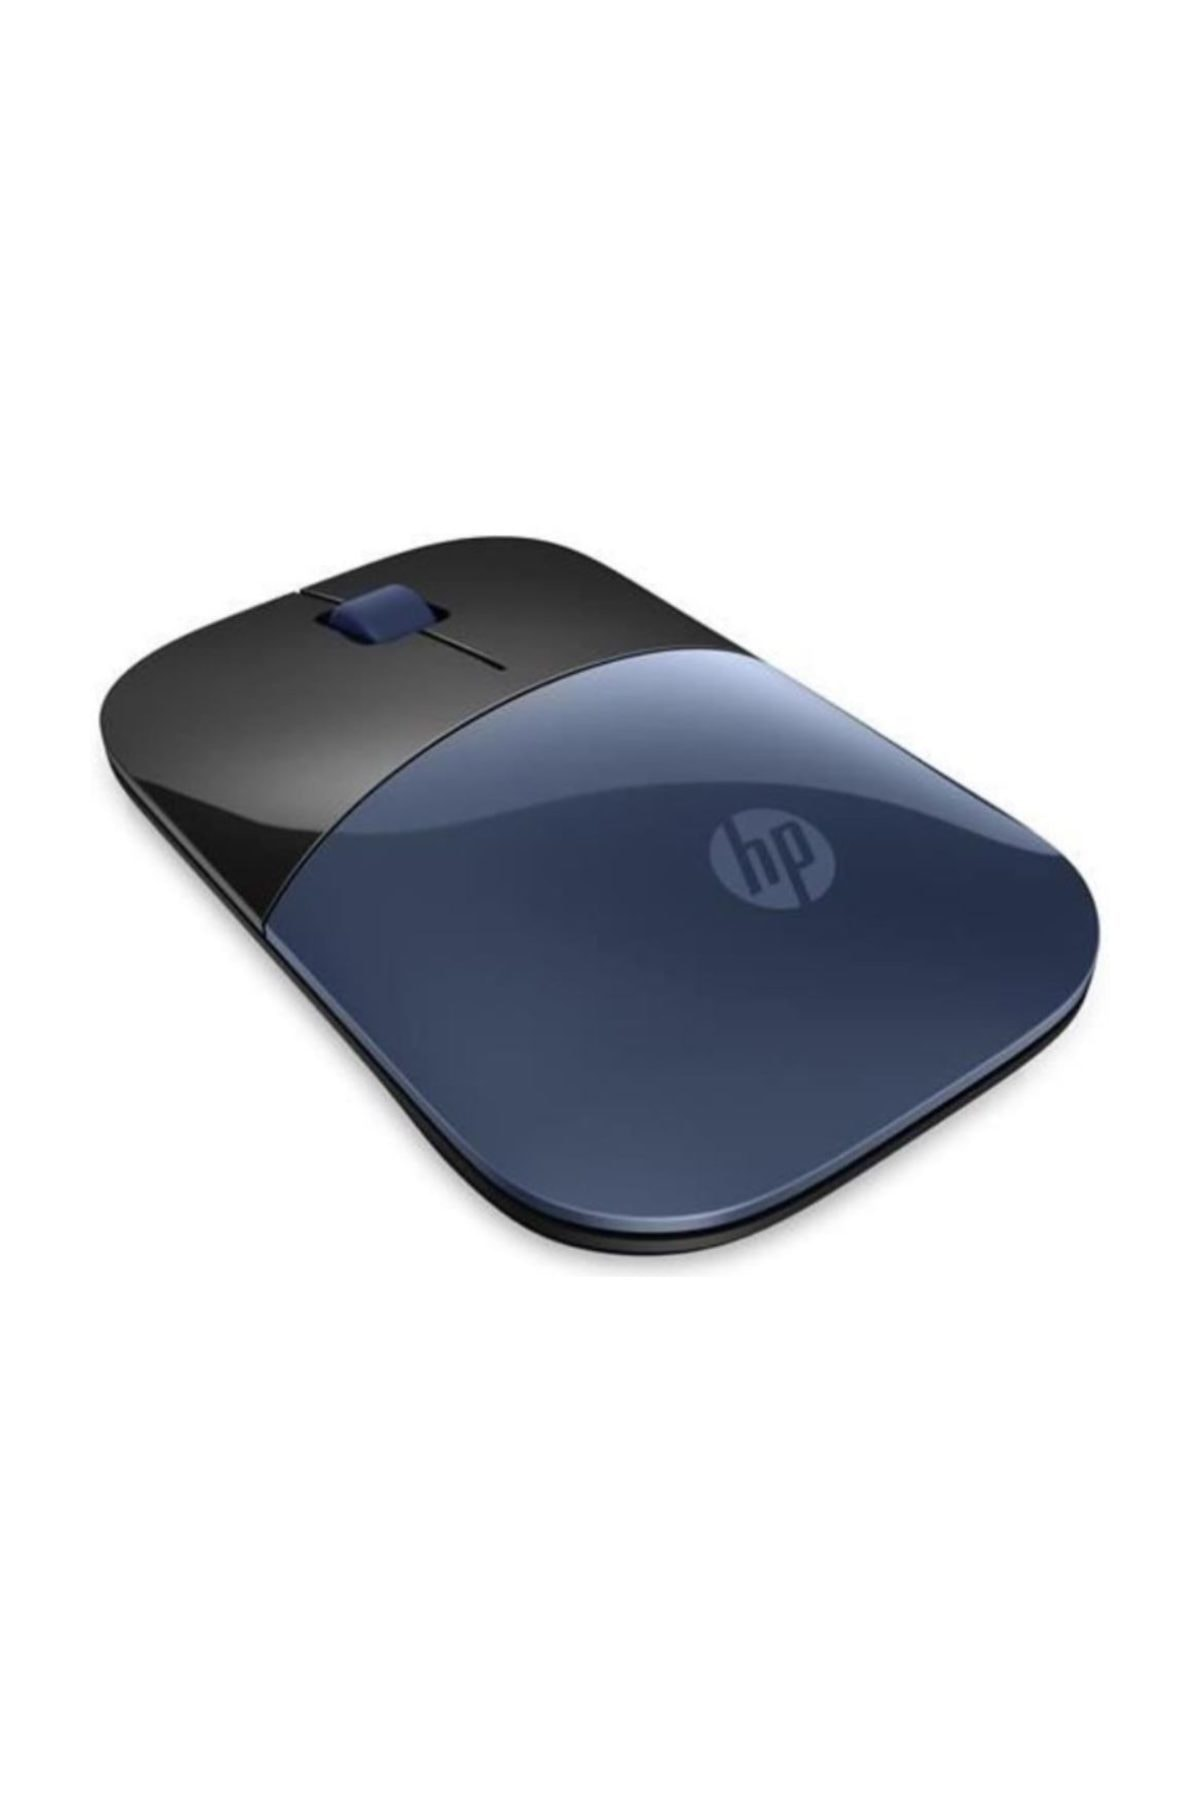 HP Z3700 Kablosuz Lumiere Blue Mouse 7UH88AA 2